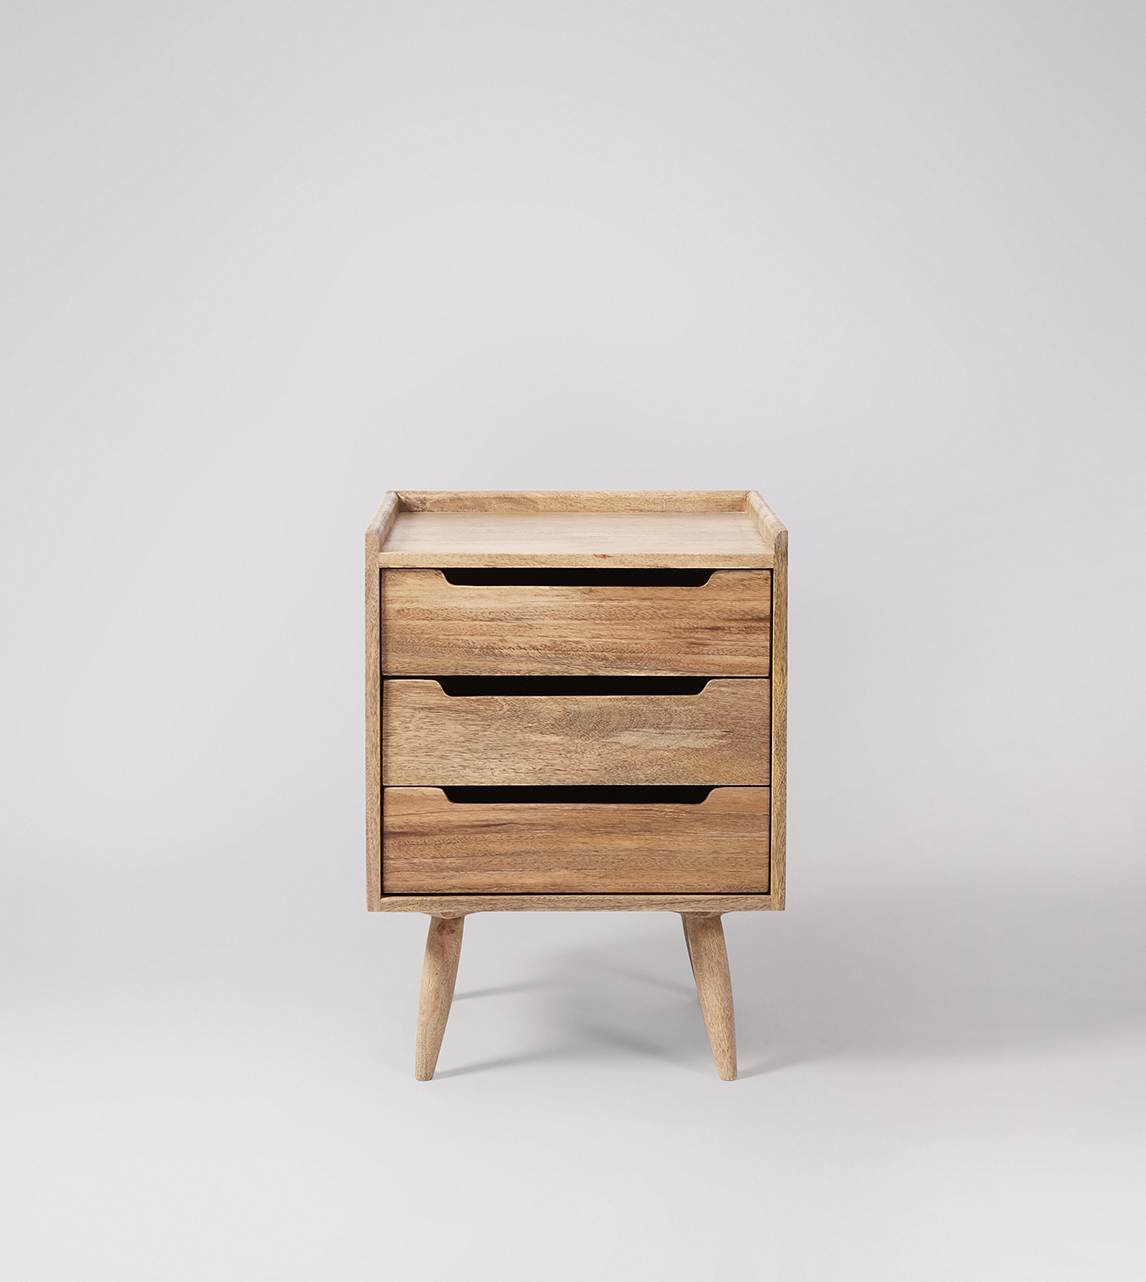 Southwark Scandi Style Bedside Table With Three Drawers In Natural Oak Stained Mango Wood Swoon